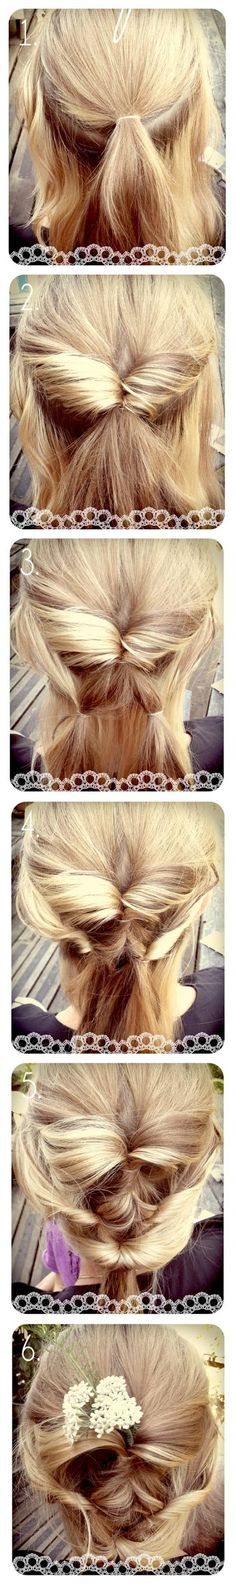 hairstyles tutorial: Wedding Hairstyle